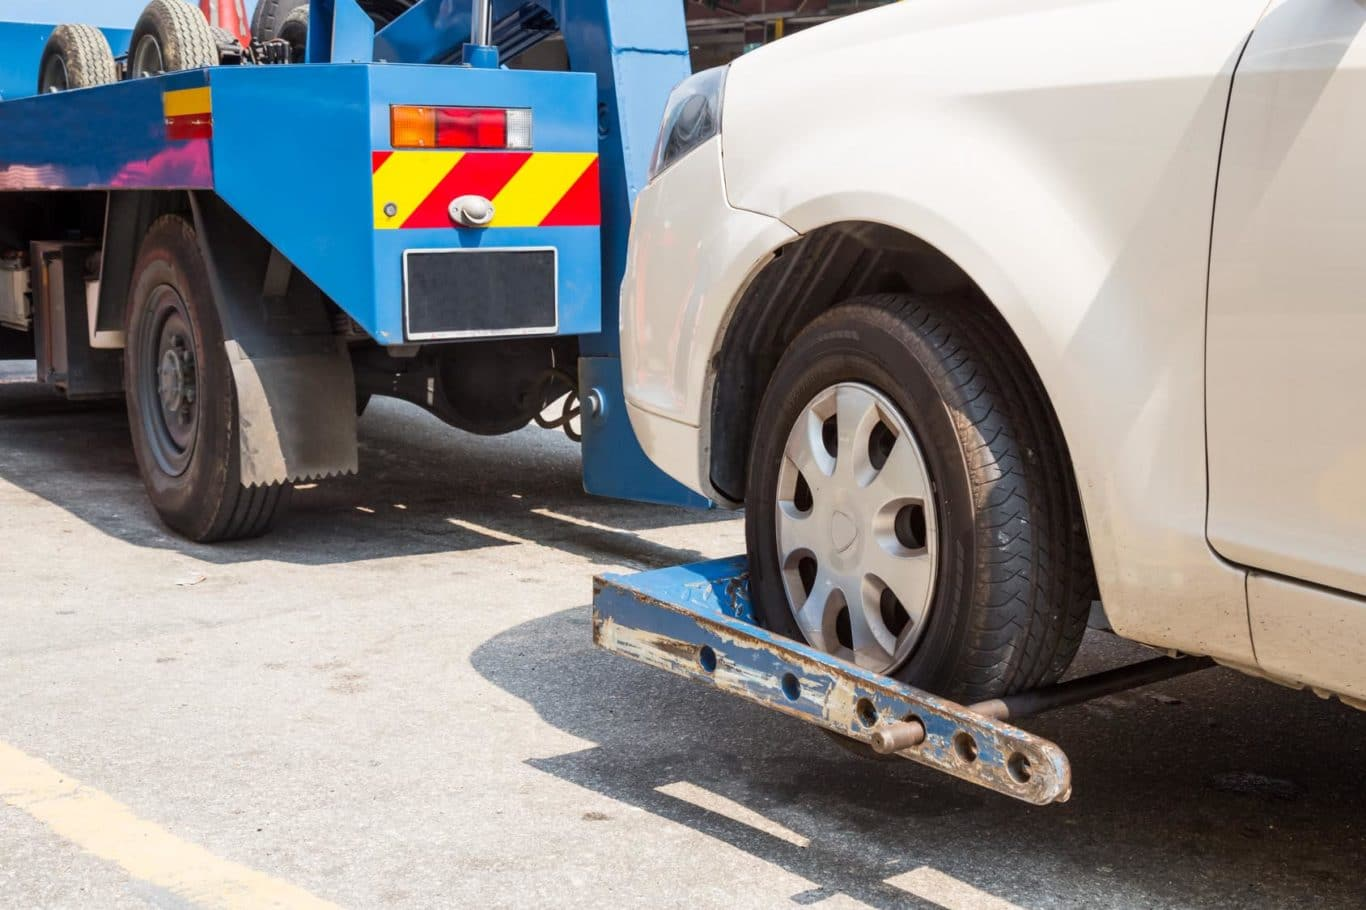 Jenkinstown, County Louth expert Car Towing services